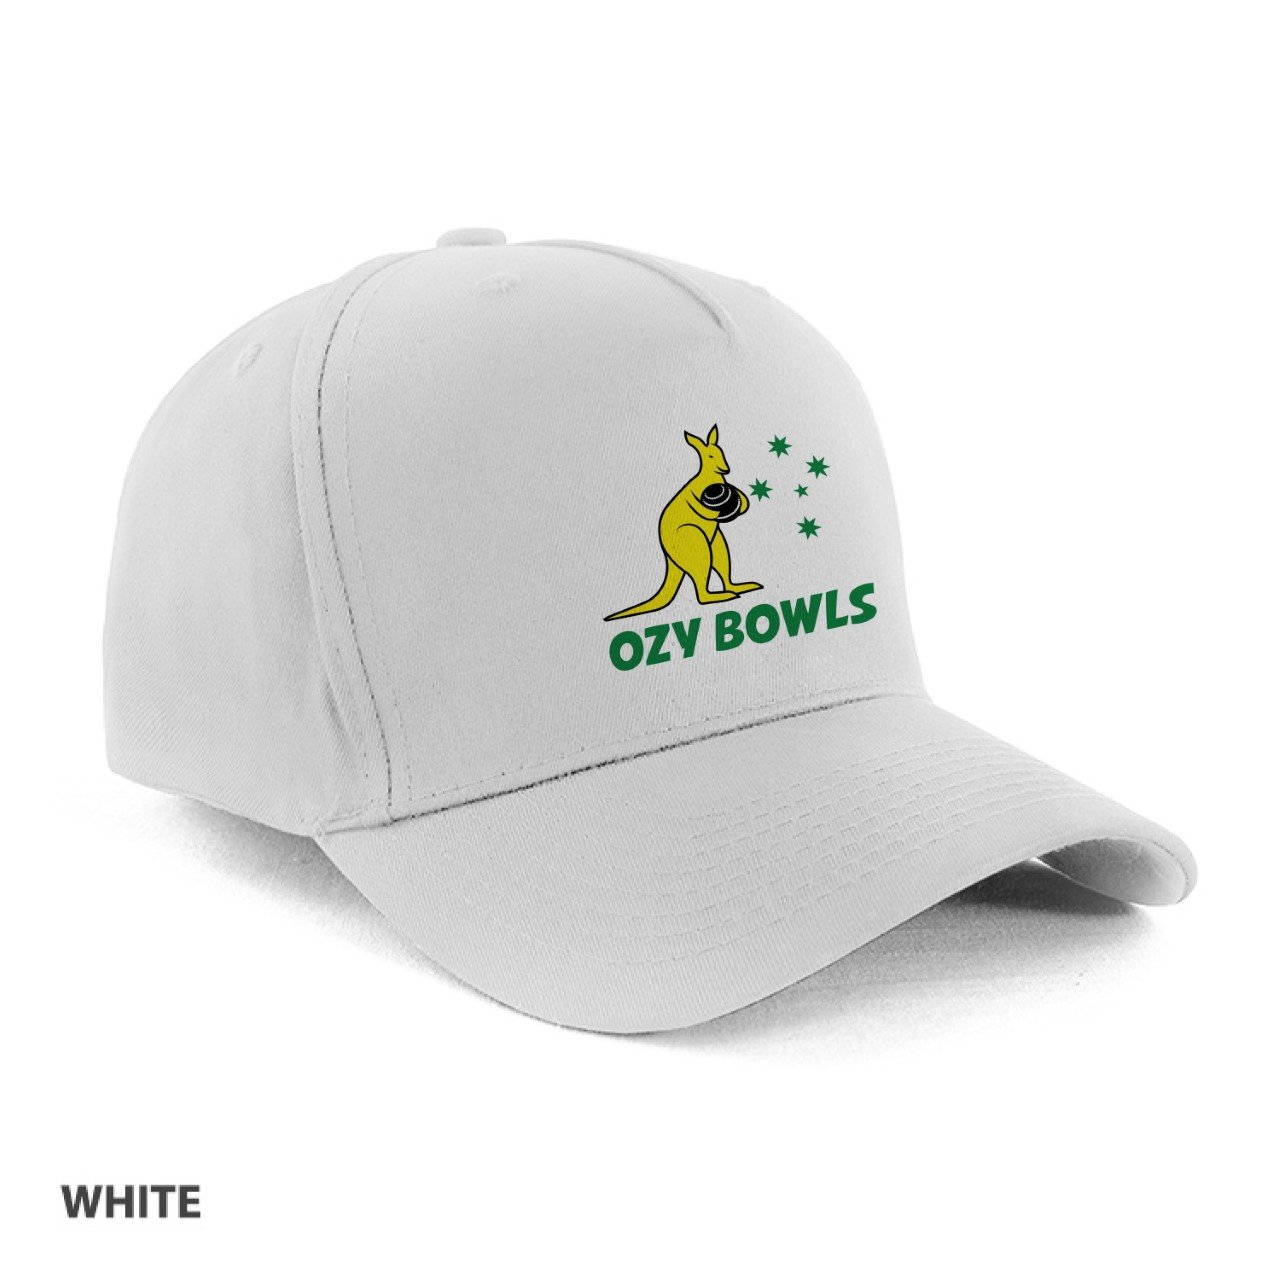 Lawn bowls stores